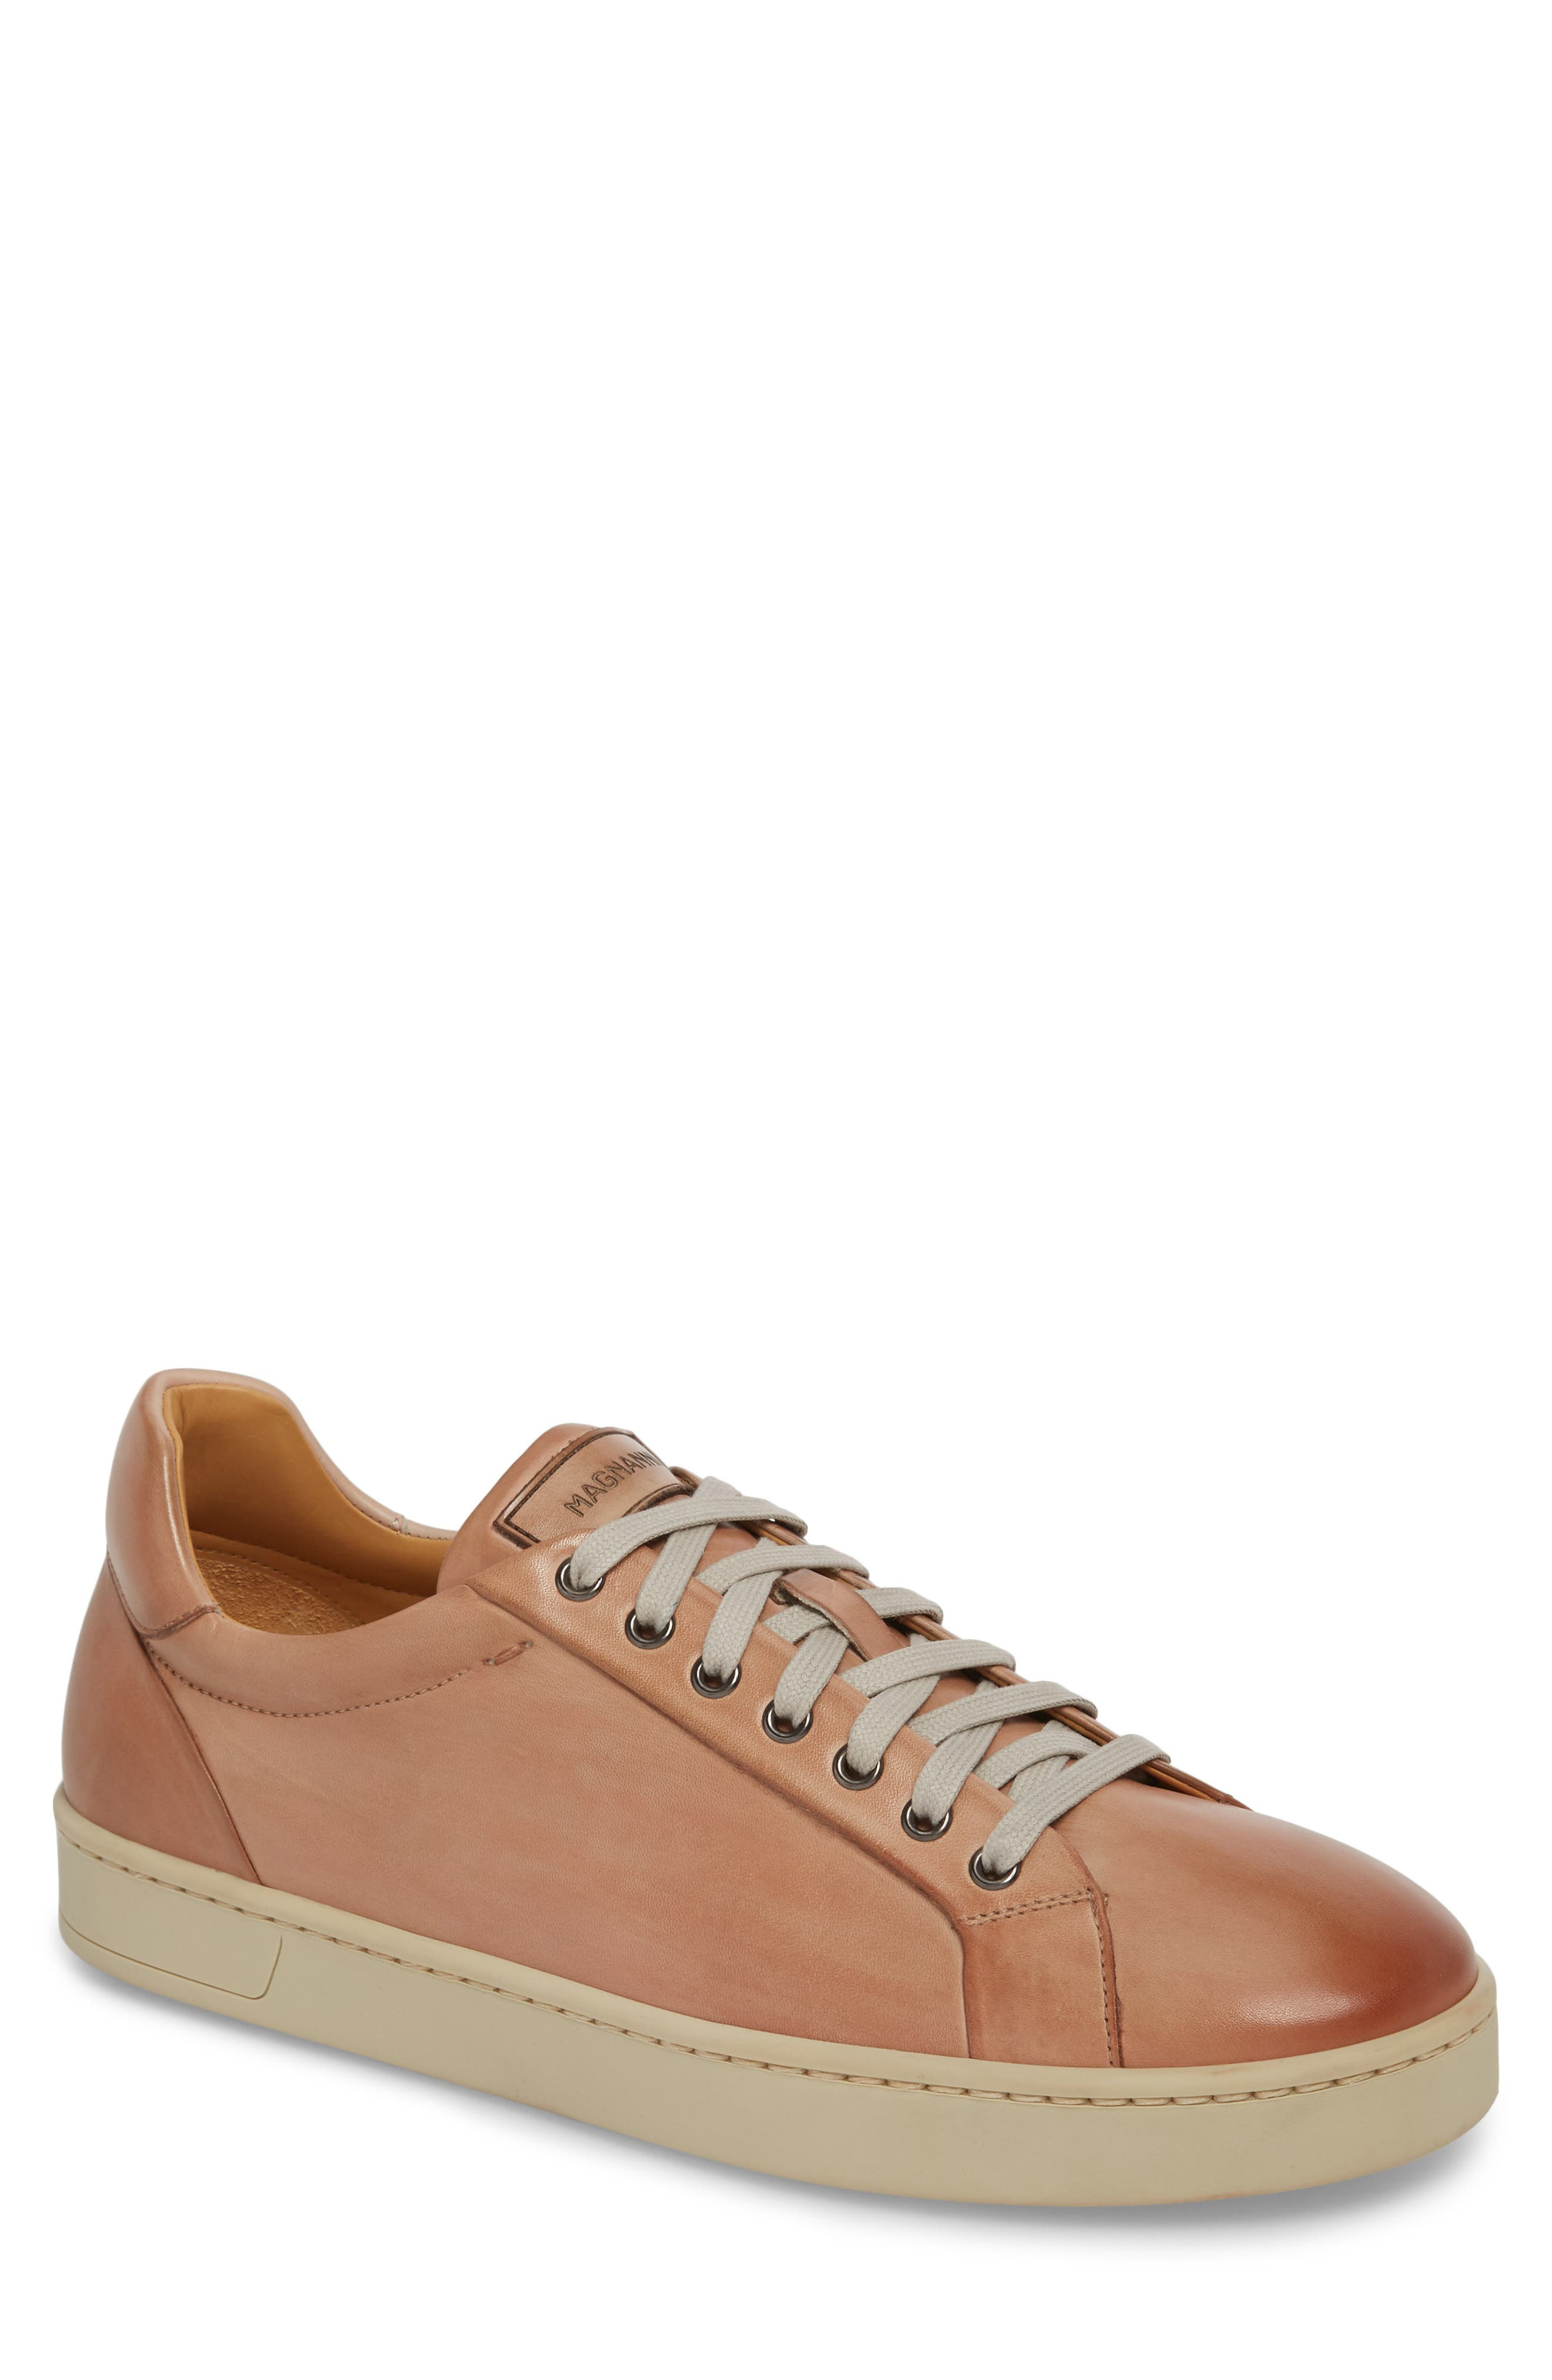 Elonso Low Top Sneaker,                         Main,                         color, Rosa Leather